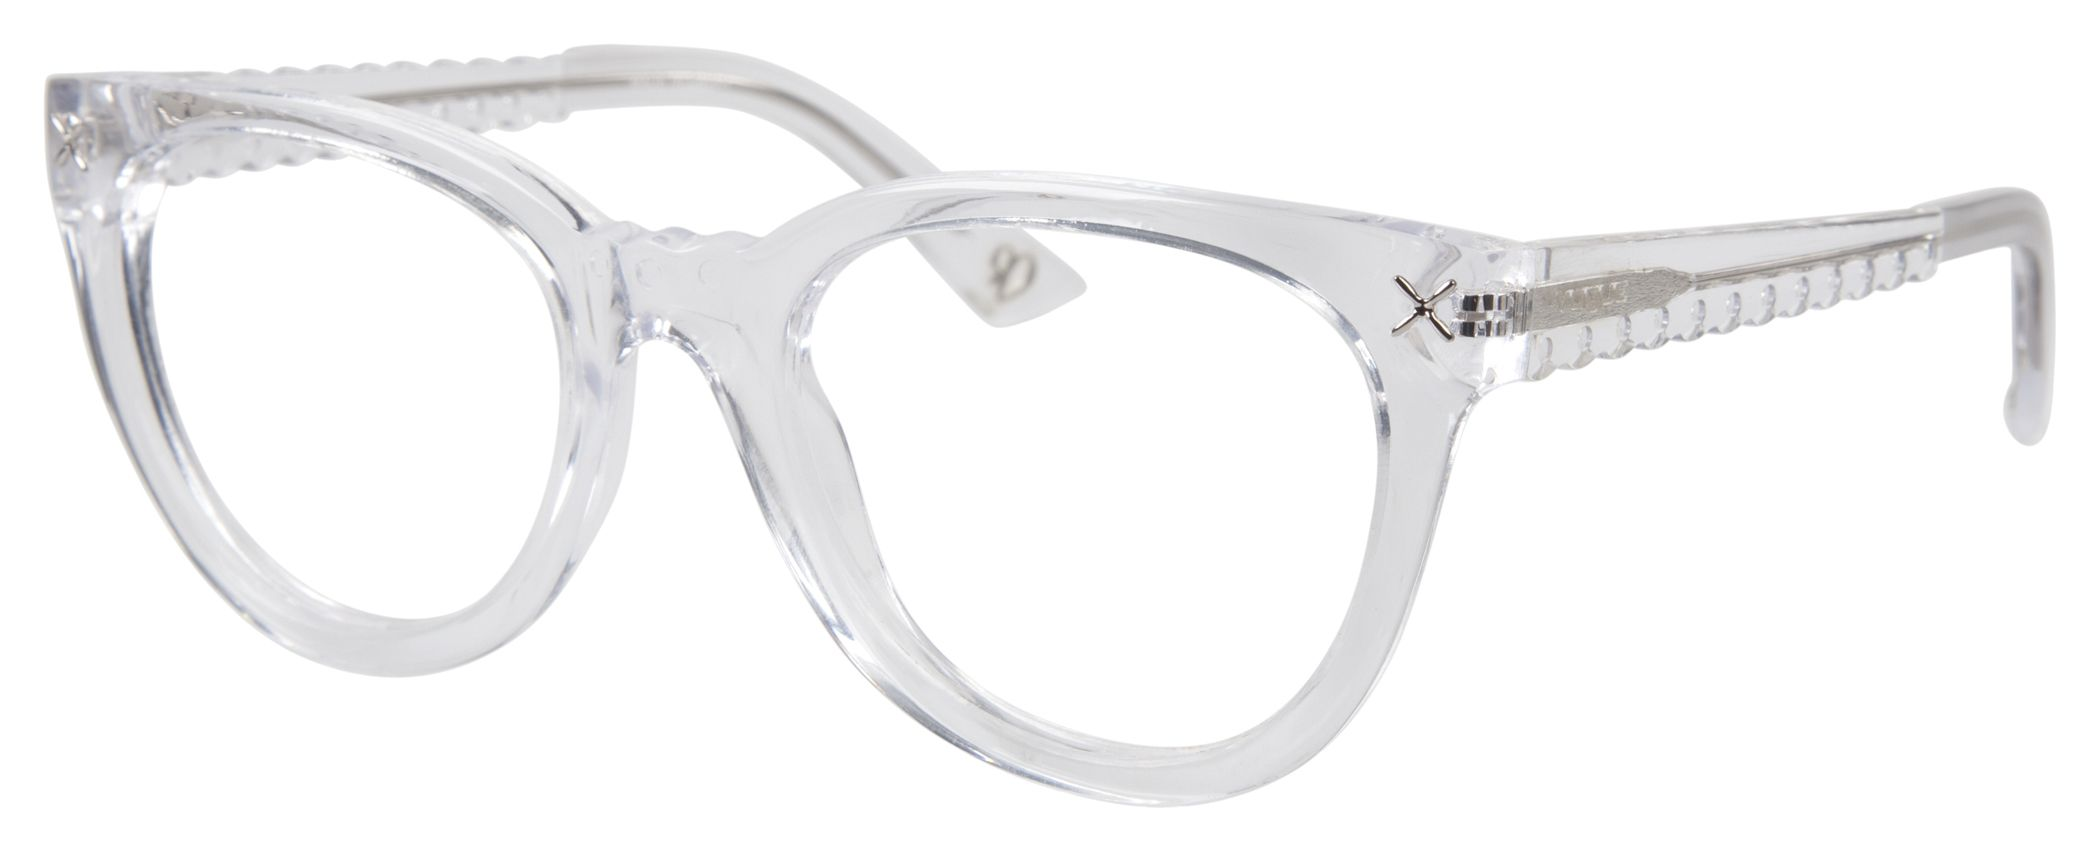 56909545e37 THESE Vogue frames will be my next eyeglass purchase!!!! They are SO cute  on!!! - VO2887W745